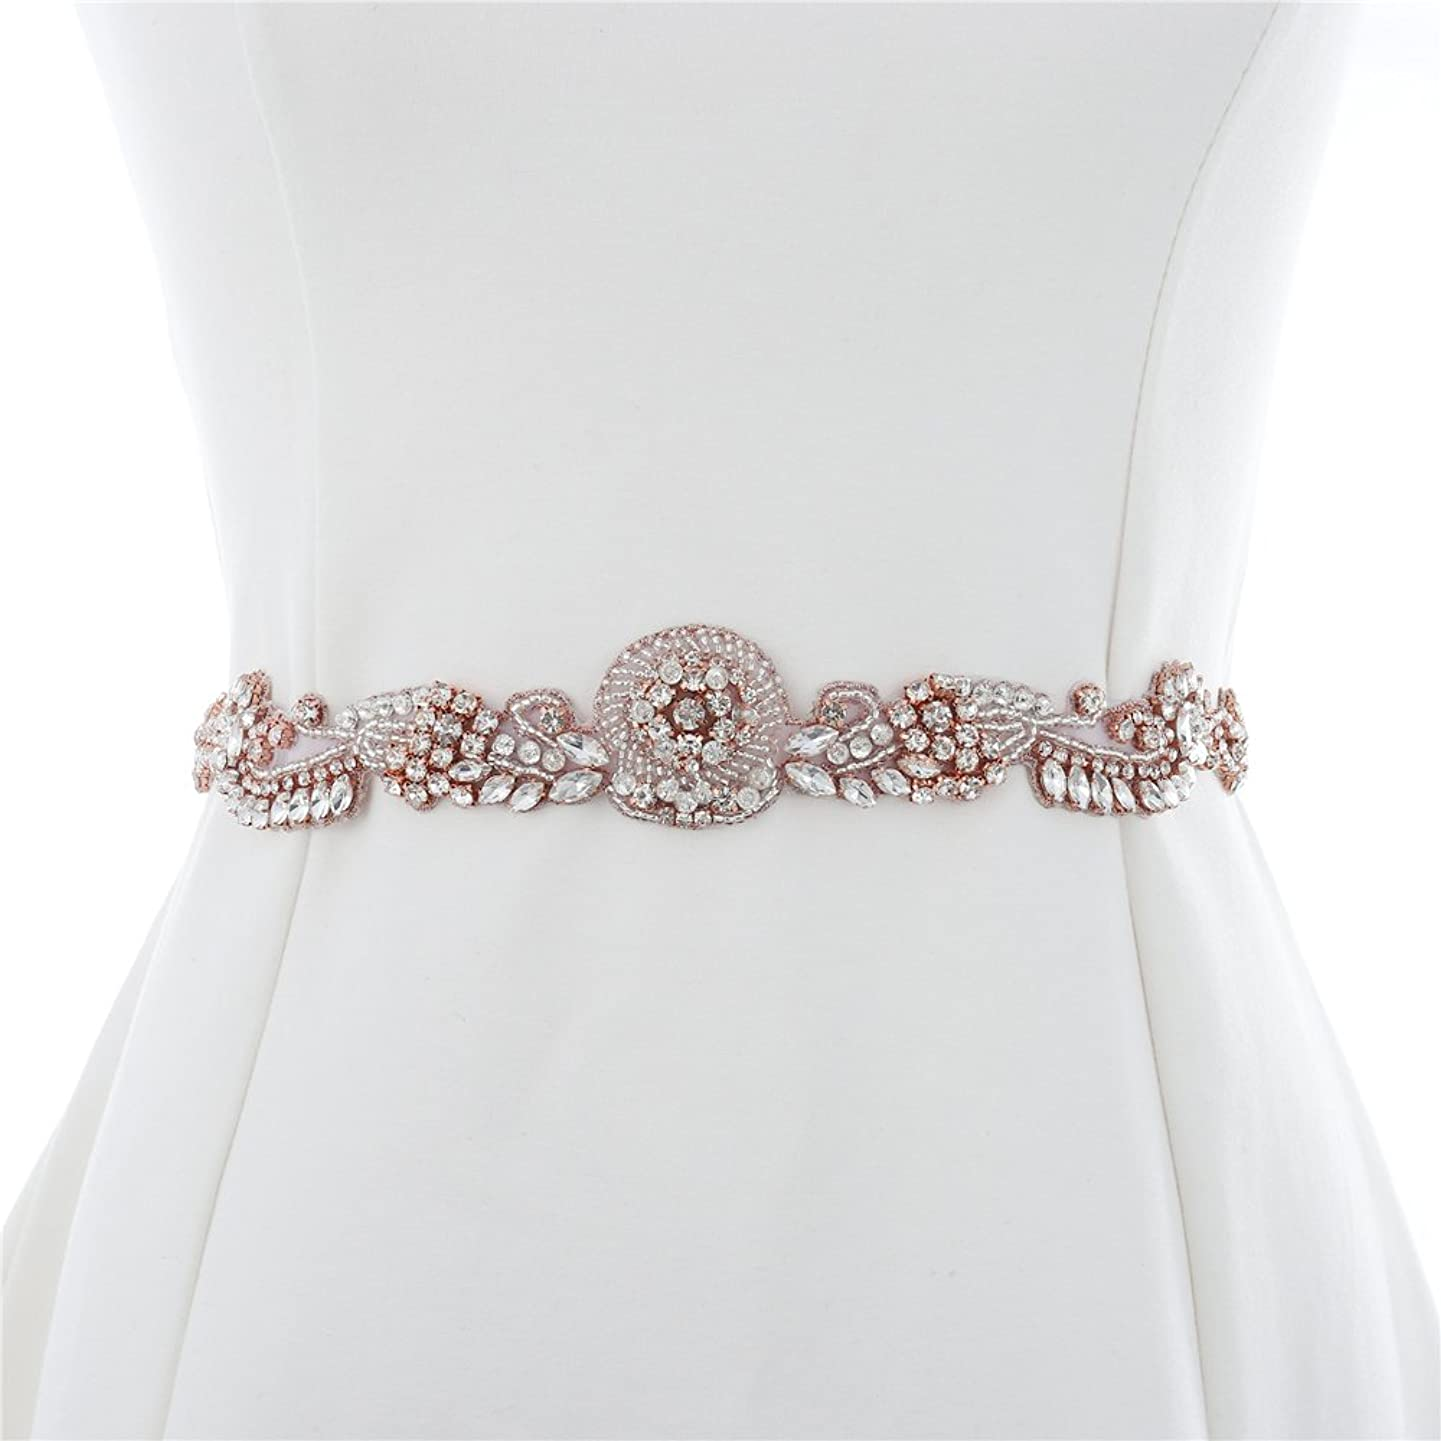 XINFANGXIU Rose Gold Bridal Wedding Dress Applique Beaded Rhinestone Belt Crystal Sash Applique Bridemaid Gown Women Prom Formal Dress Belt Applique Jeweled Embellishment Clothes Accessories